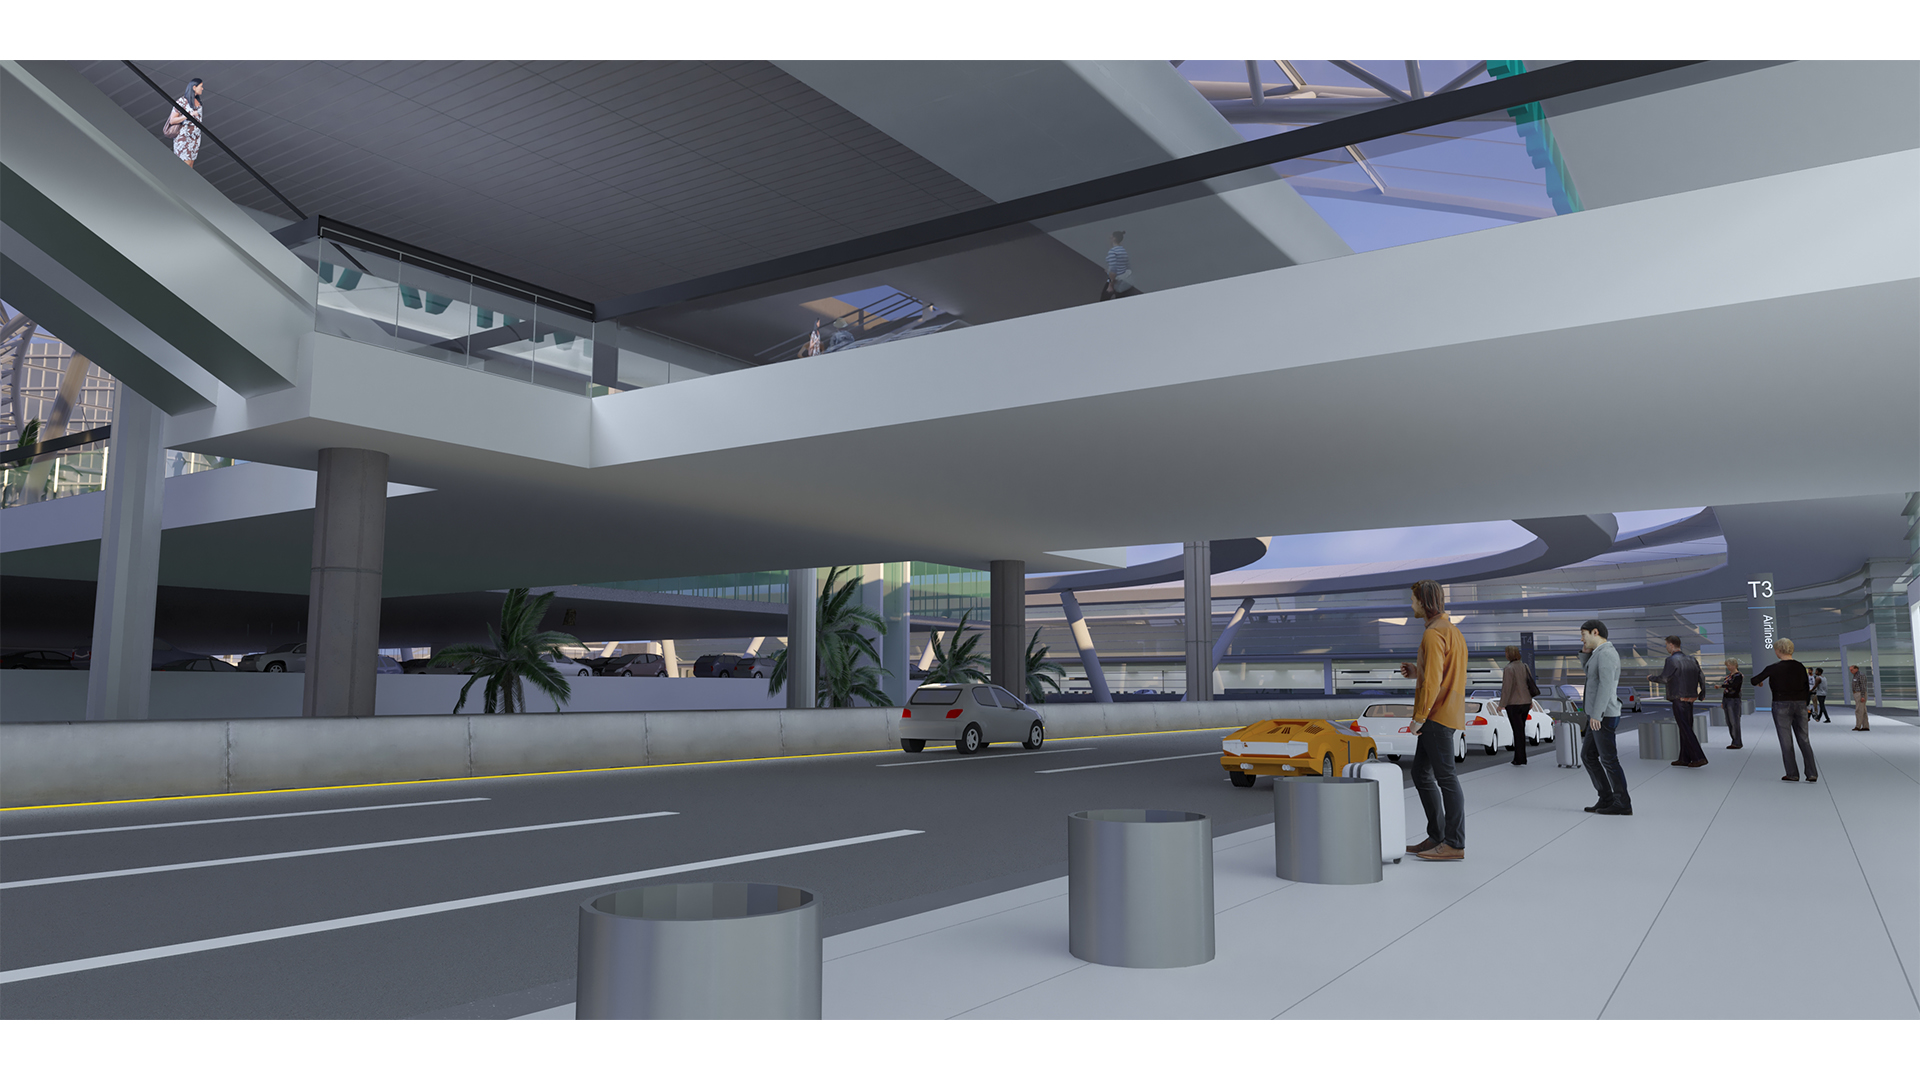 IMD_Rendering_Aviation_FLL_44_Leaving_Airport.jpg